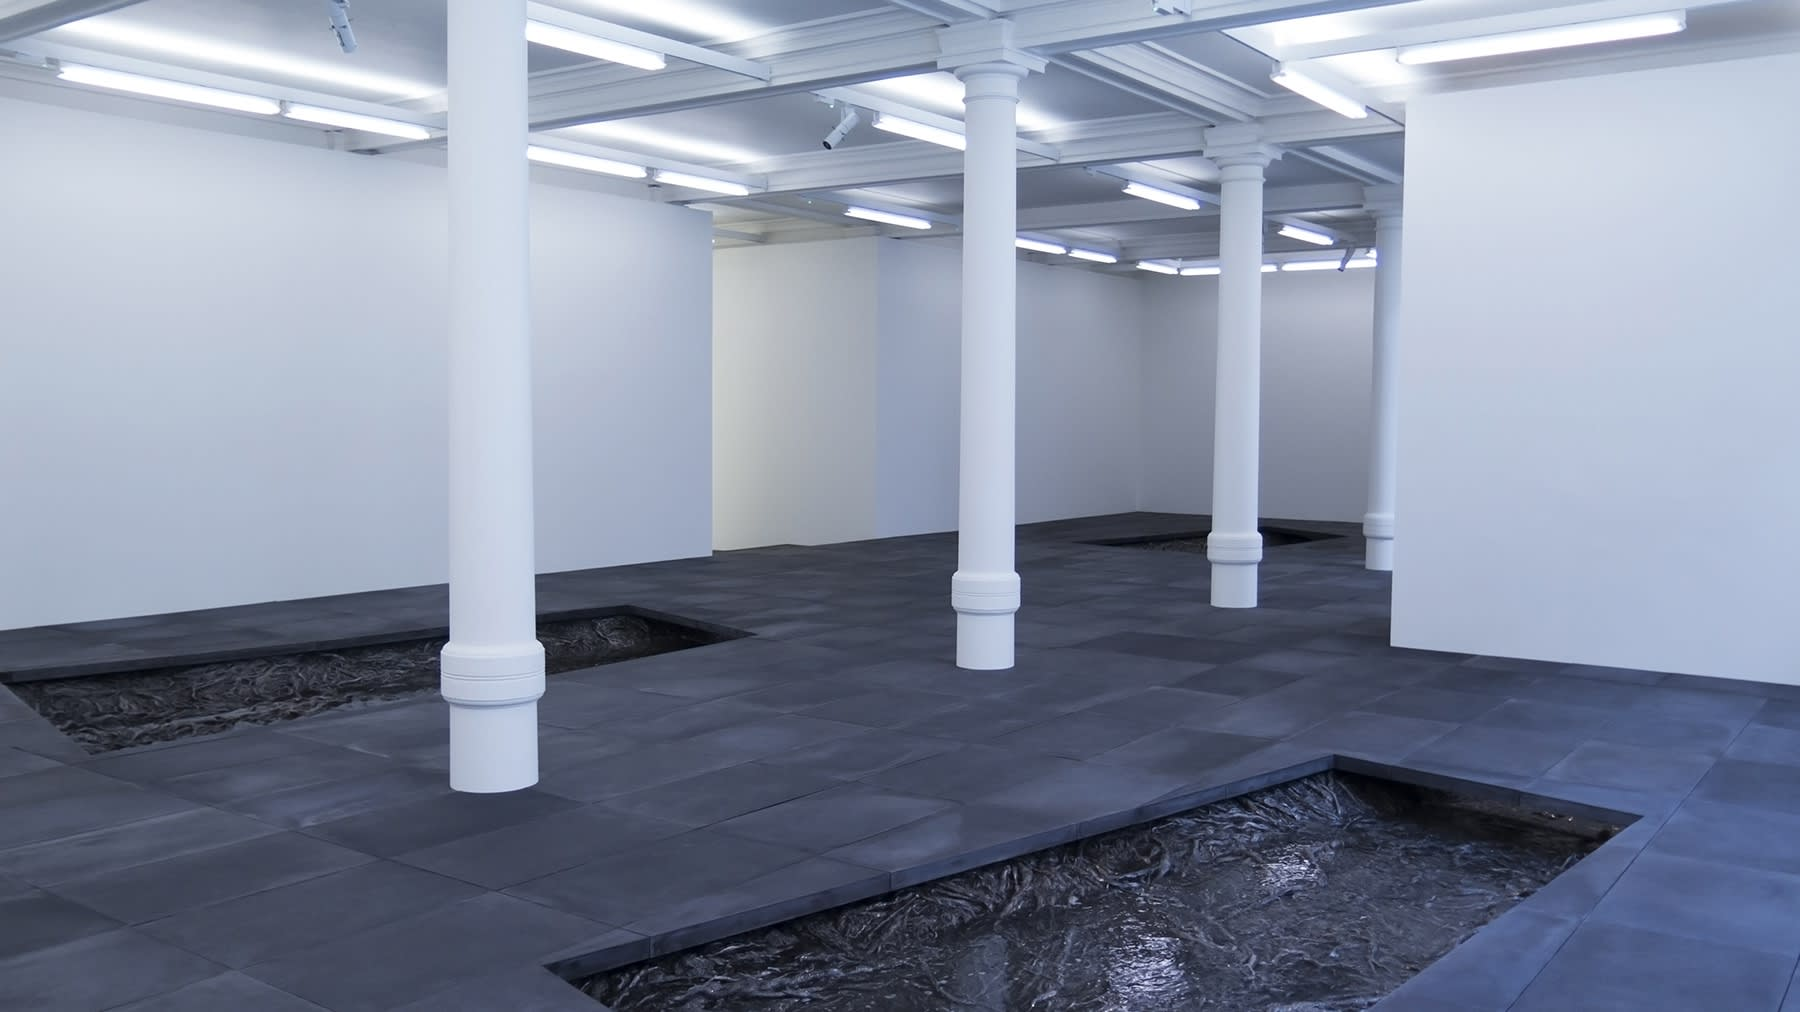 3 rectangles are cut out of a dark grey tiled floor in a large white room. They are filled with cast roots and a surface resembling water. 4 white columns span the length of the room.